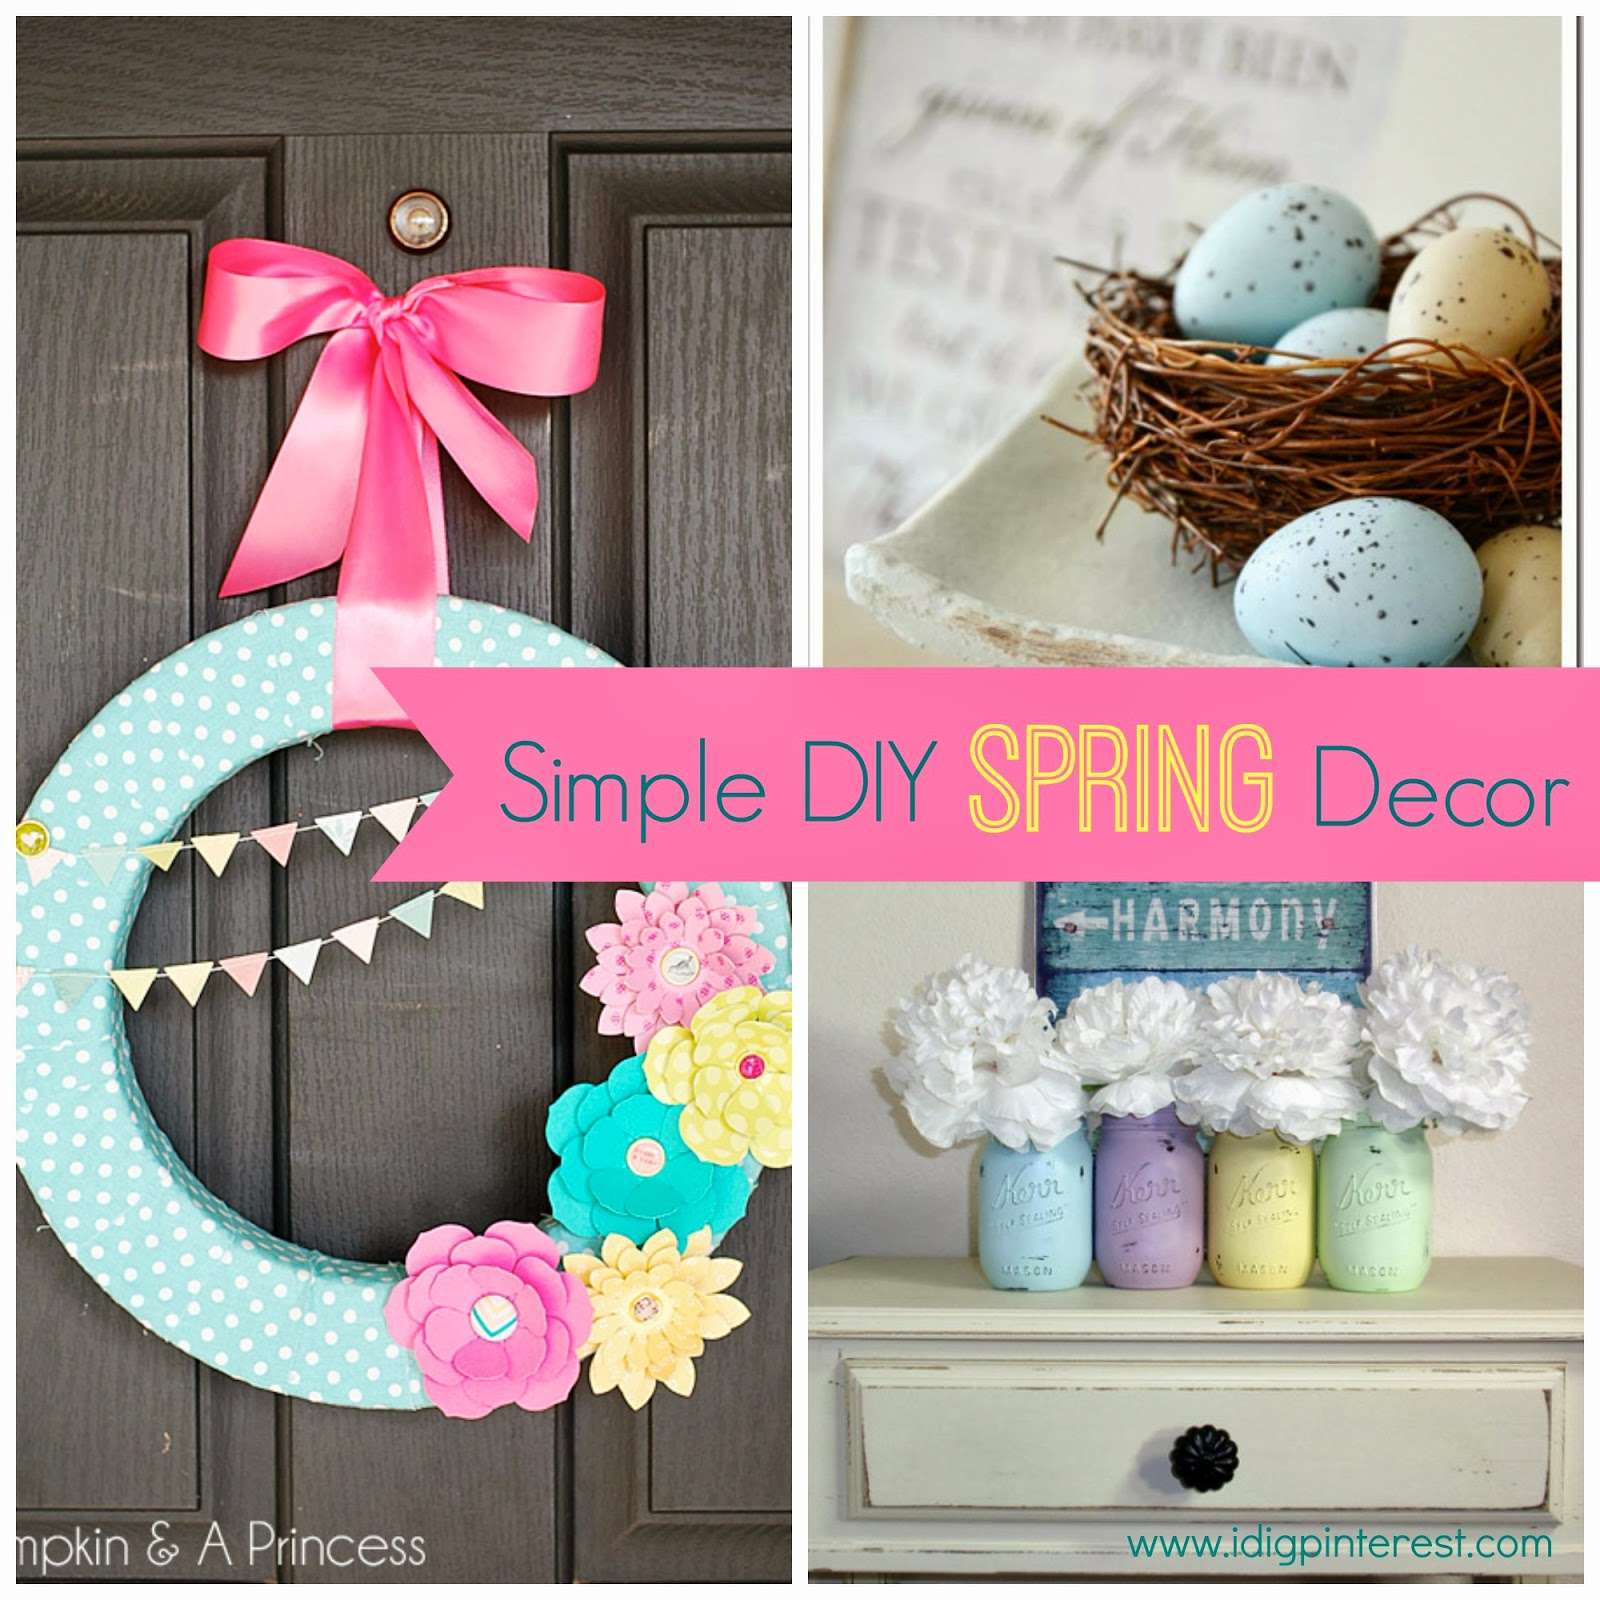 I dig pinterest simple diy spring decor ideas - Room decor ideas pinterest ...